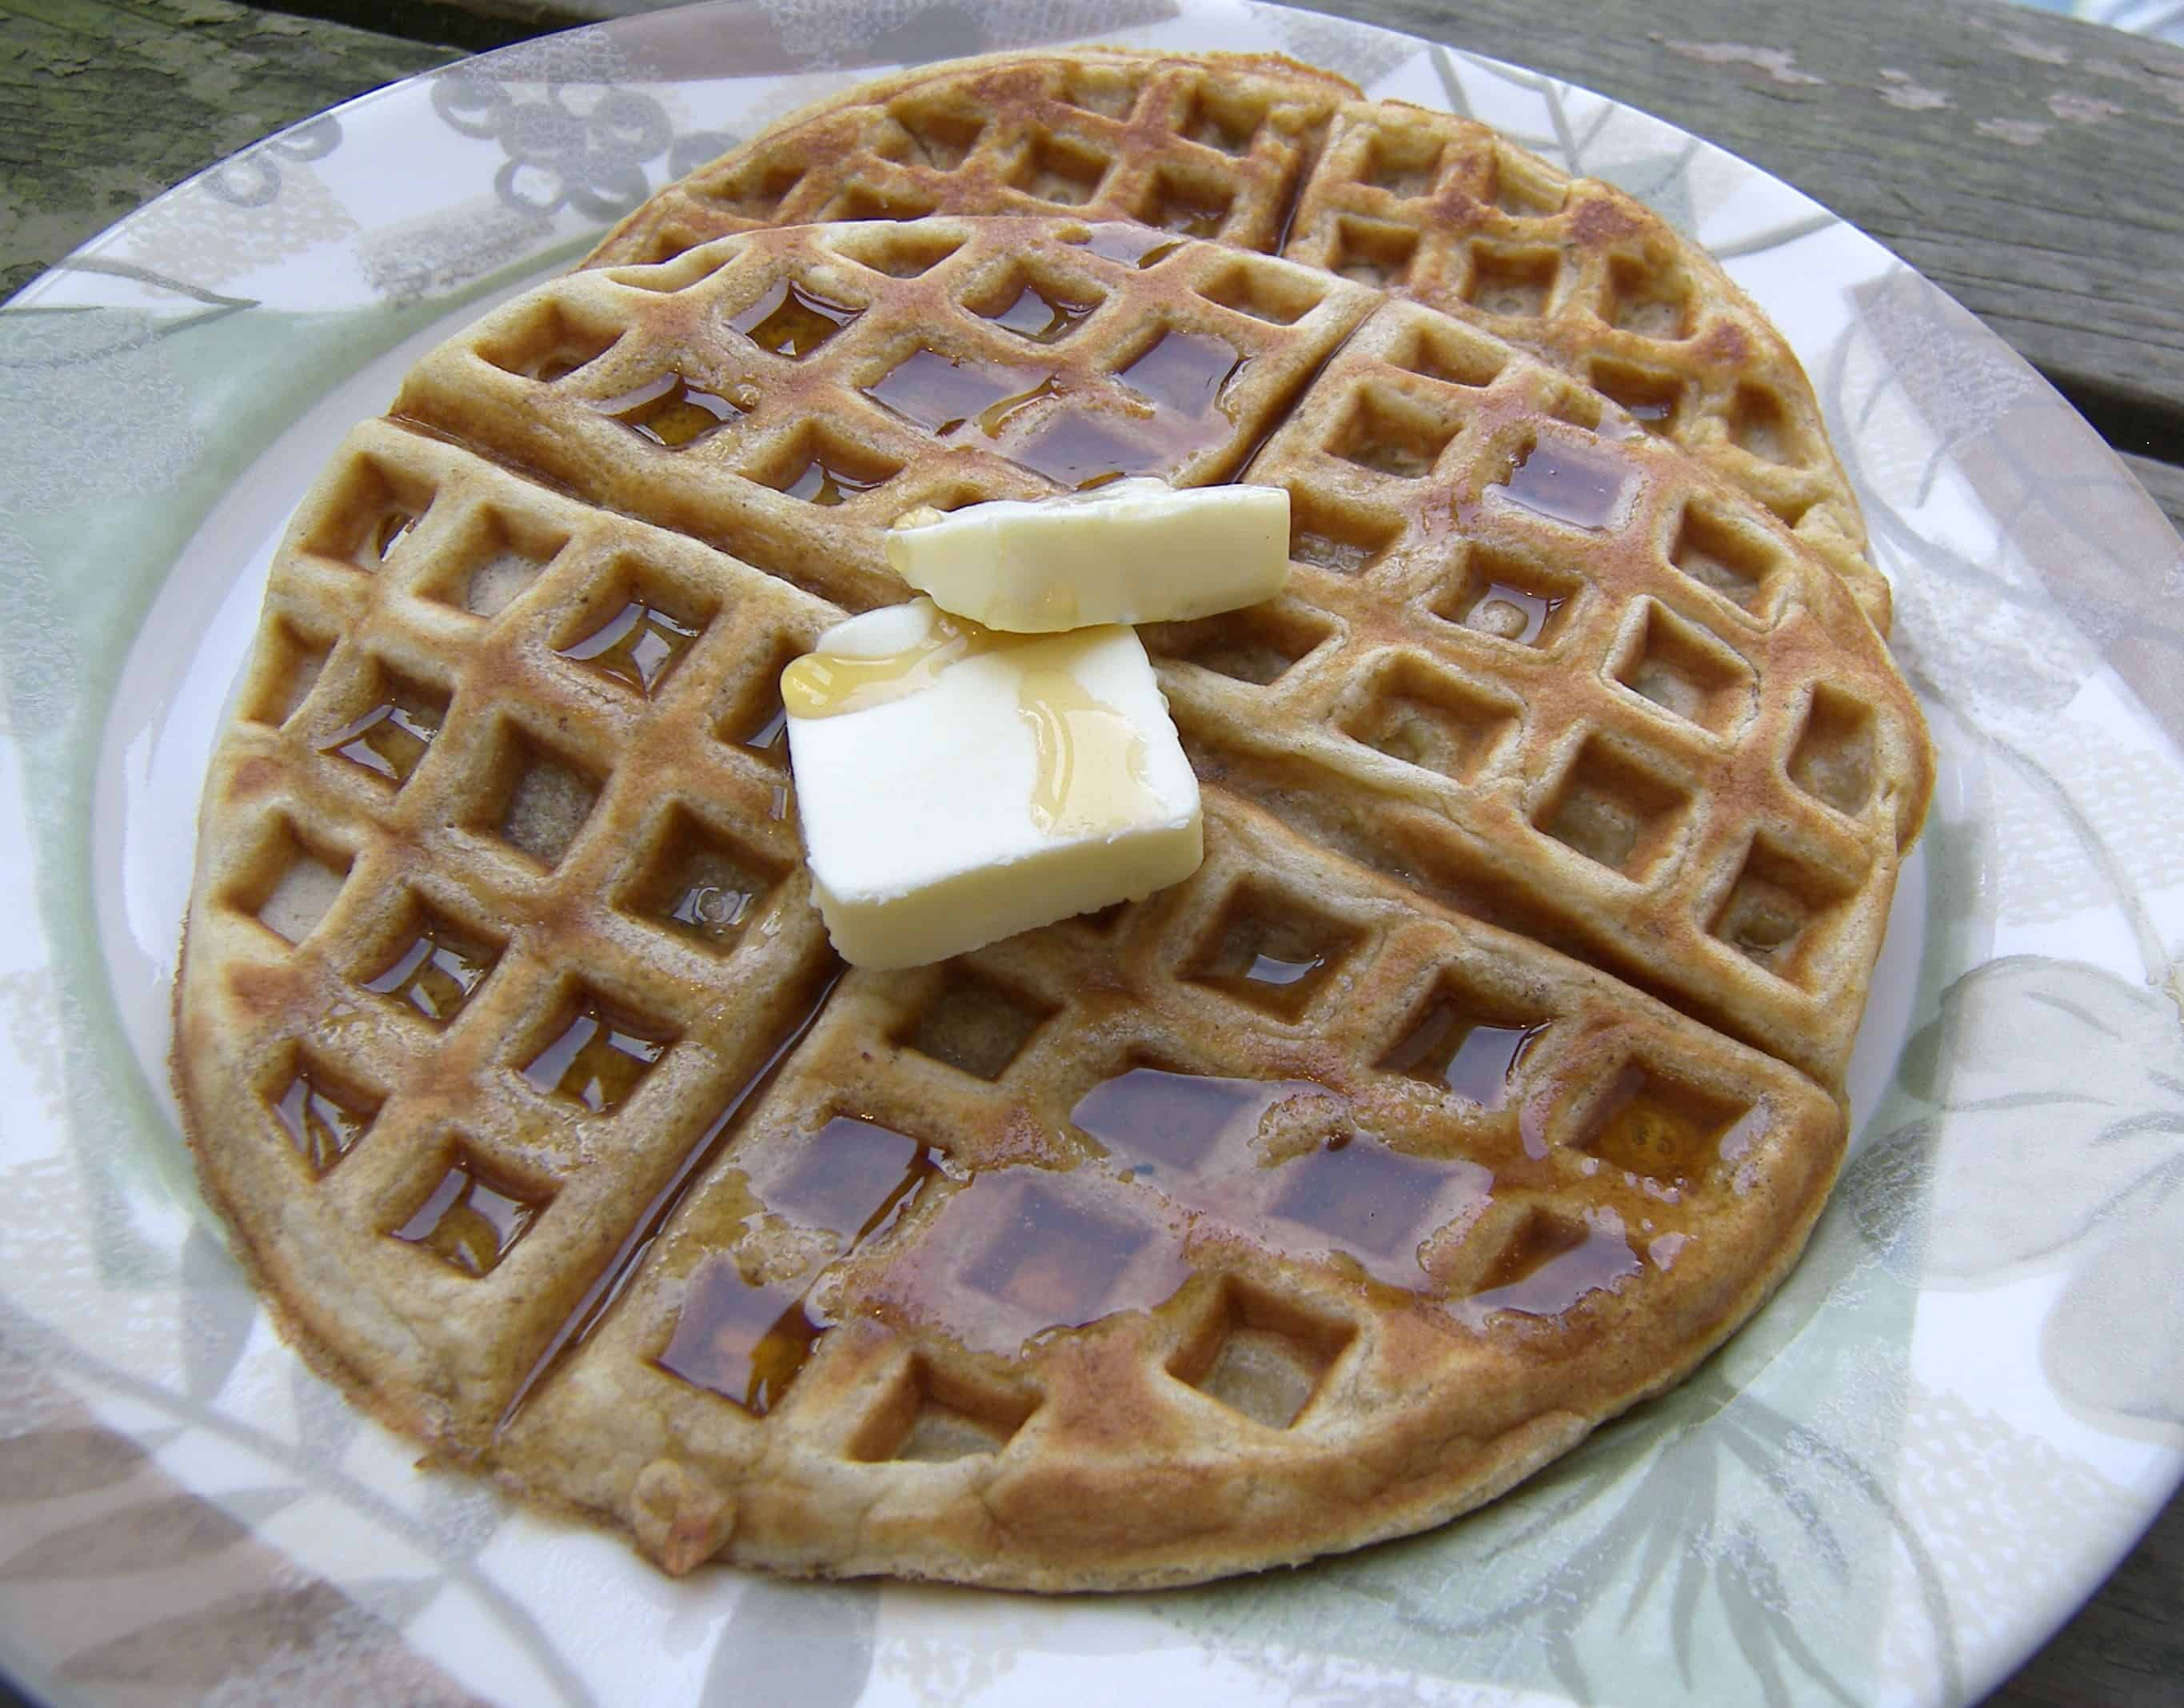 Alton brown 39 s oat waffle eat like no one else for Alton brown oat cuisine